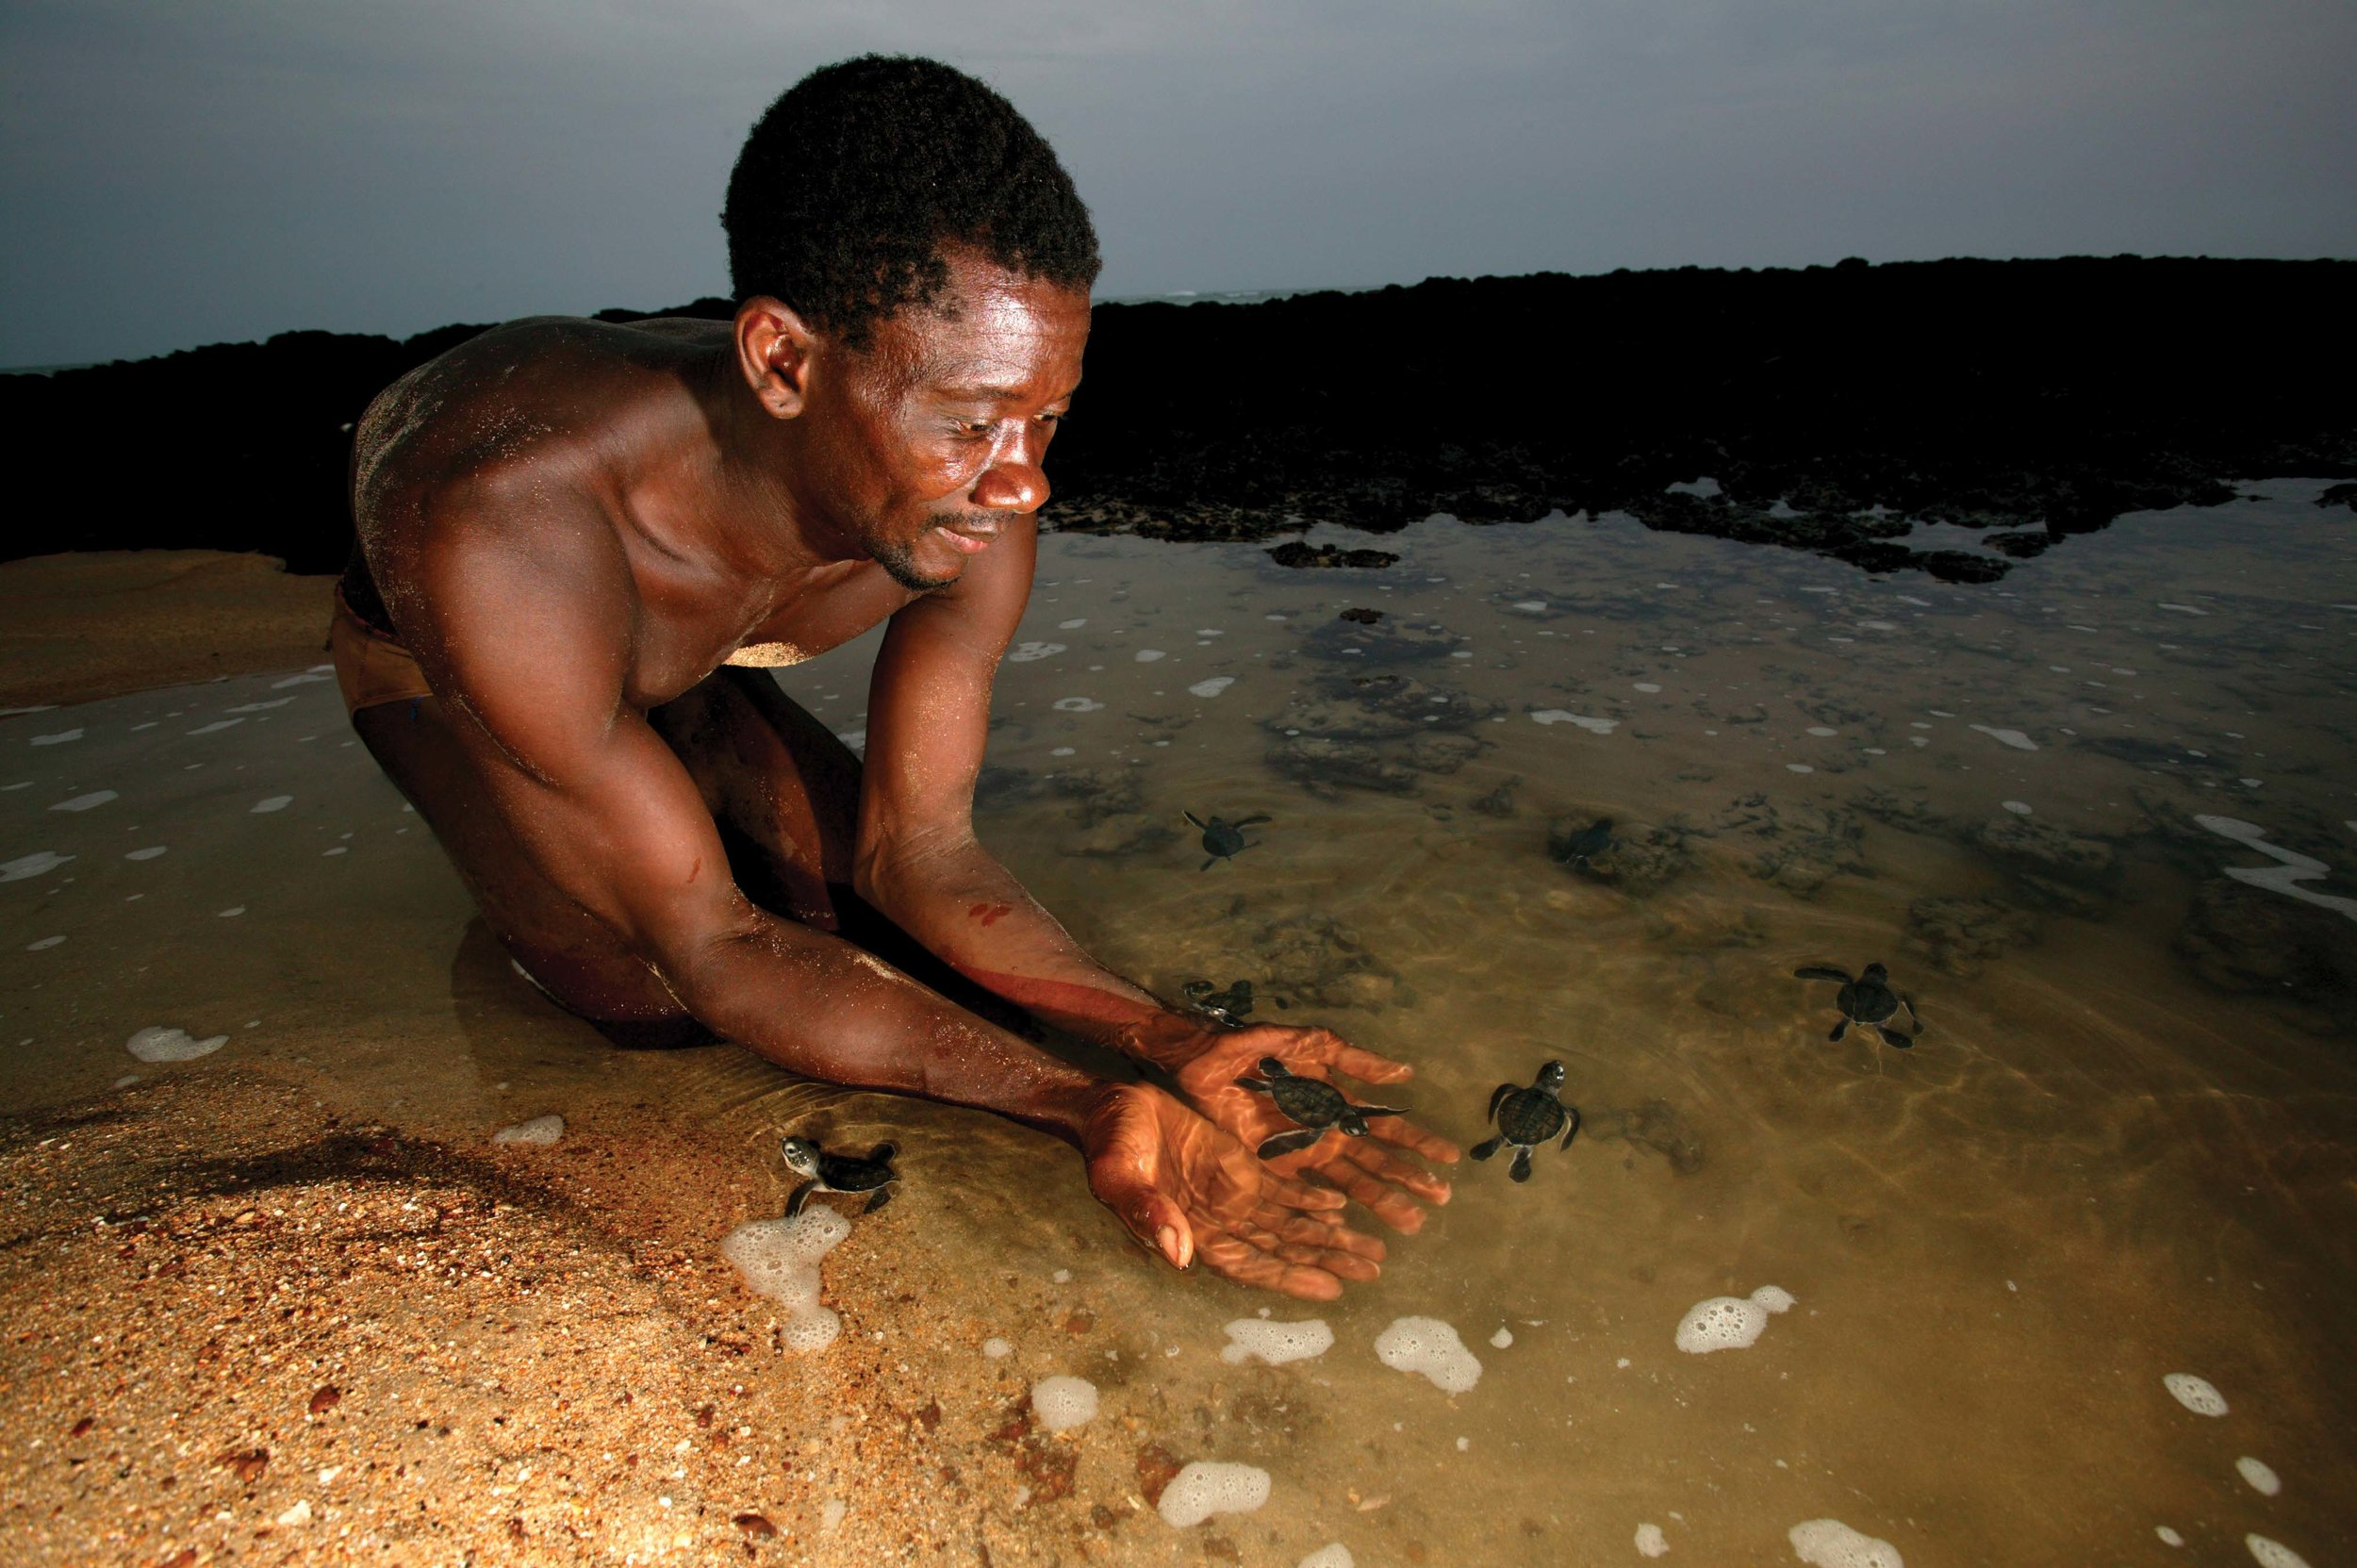 A local resident and ranger at João Vieira and Poilão National Park releases green turtle hatchlings on the island of Poilão in Guinea-Bissau. © J. F. HELIO AND N. VAN INGEN